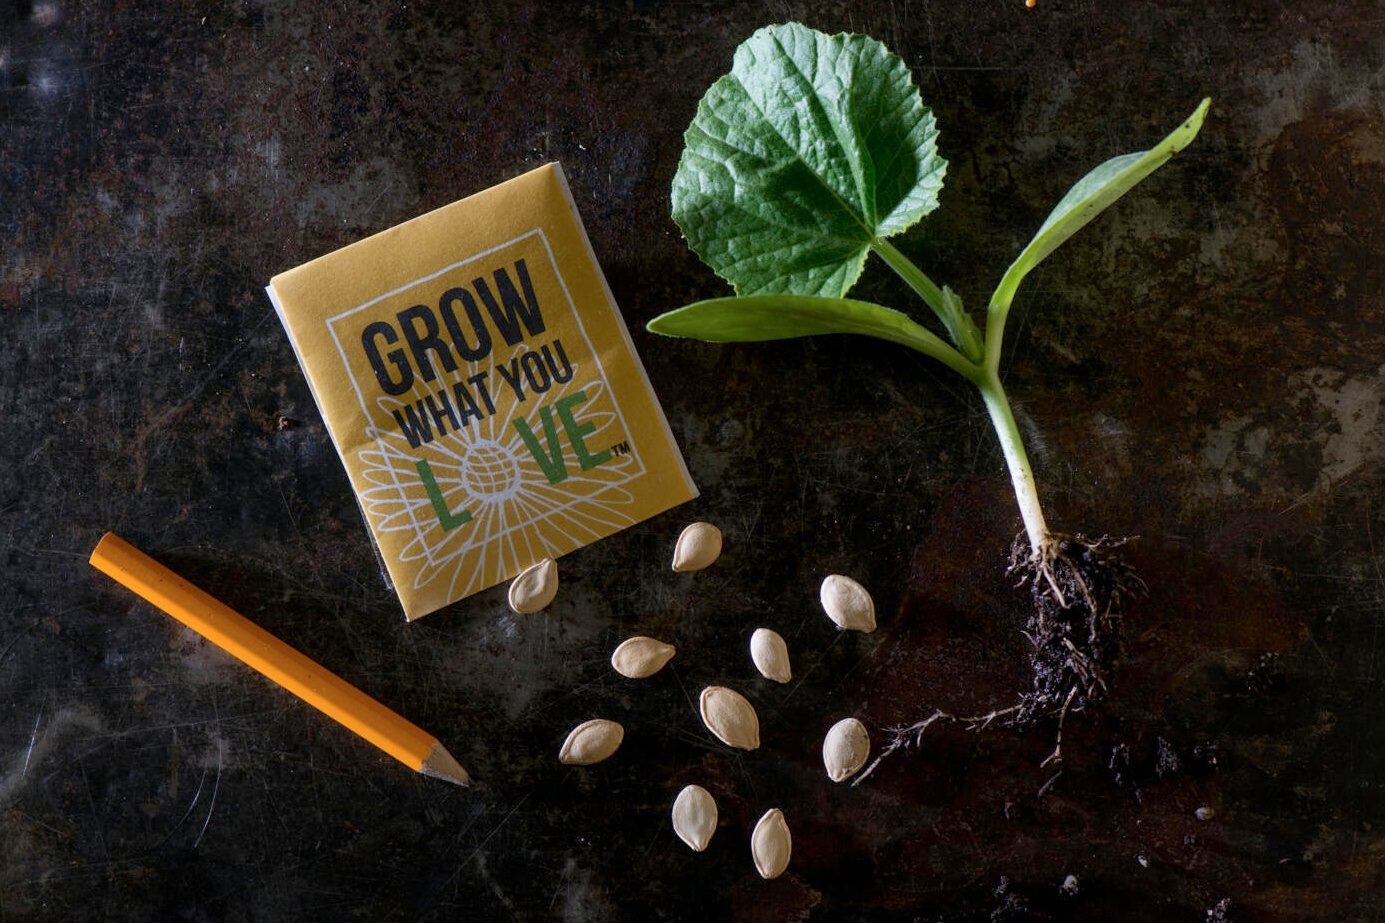 overhead shot of packet of plant seeds and a plant seedling